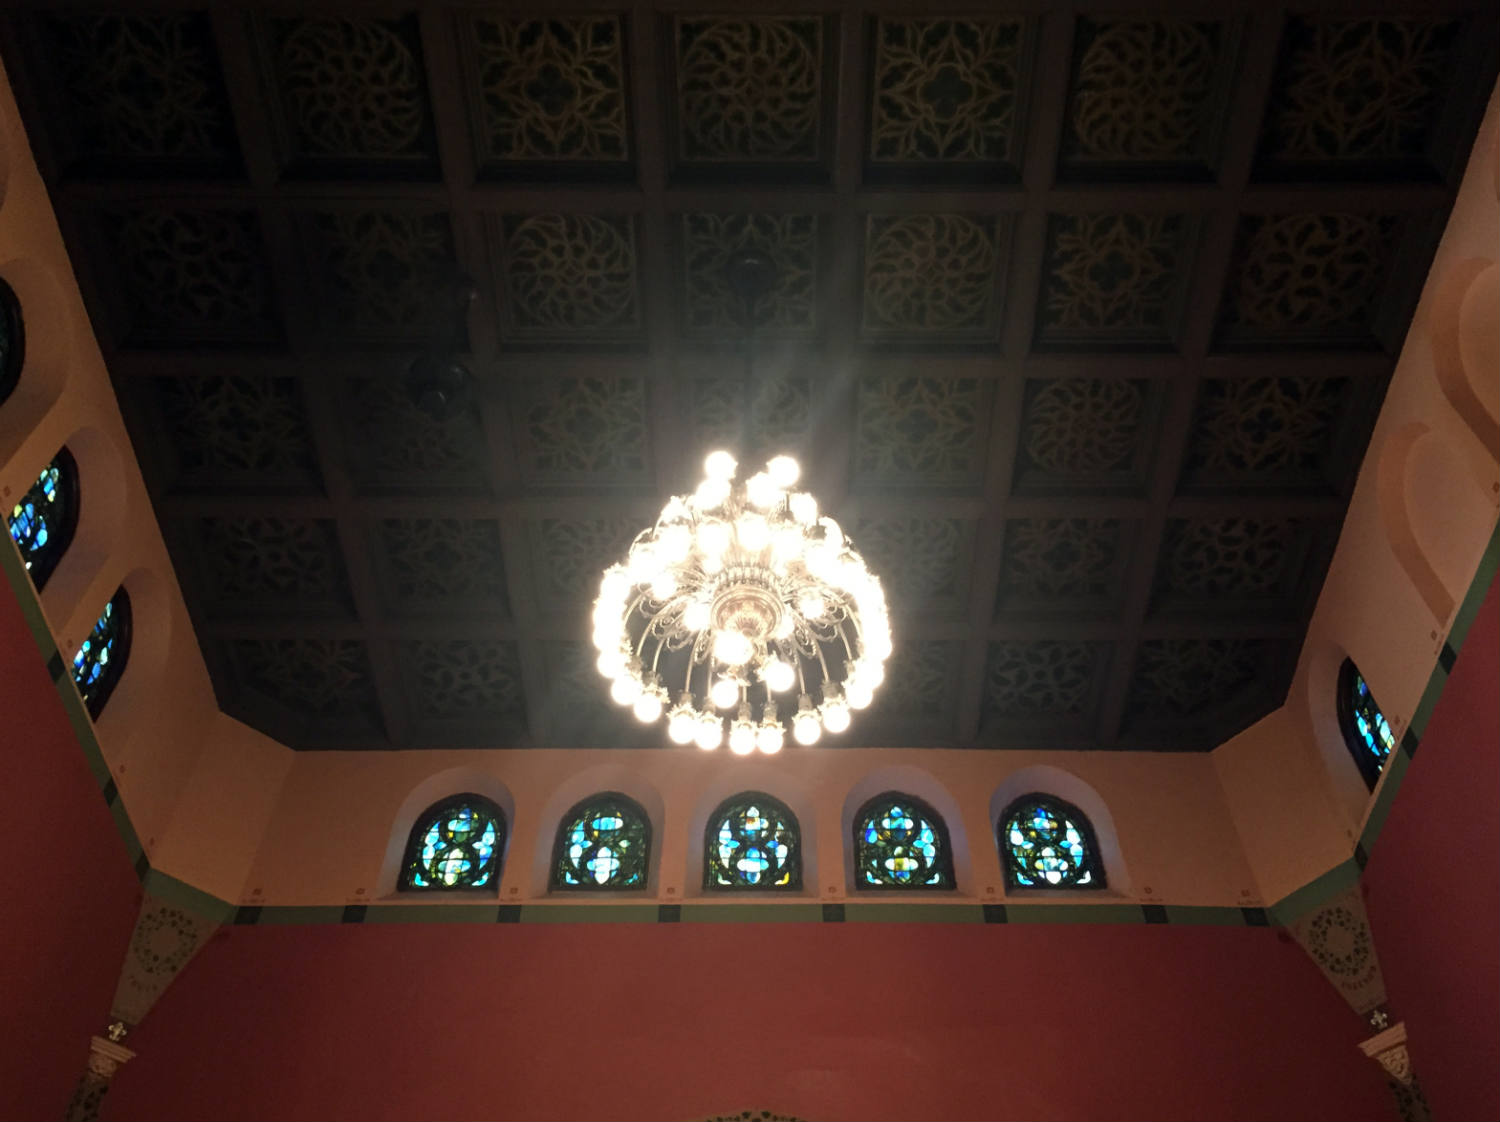 Ceiling Detail and Windows in the Pullman Memorial Universalist Church in Albion